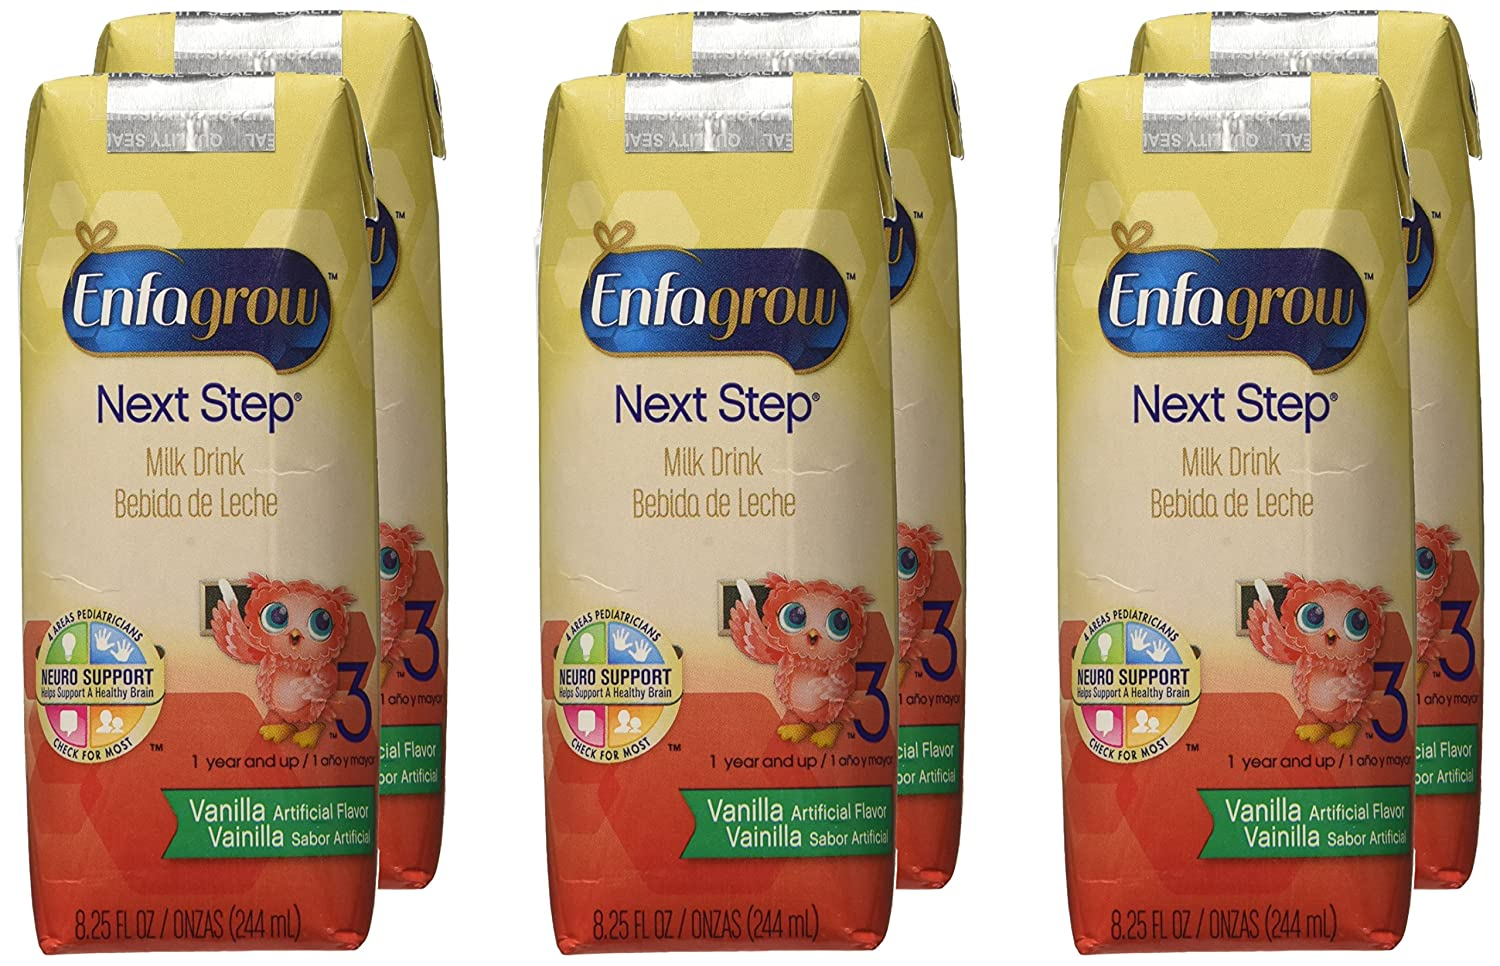 Enfagrow Toddler Next Step Toddler Milk Drink - Vanilla - Ready to Drink - 8.25 oz - 6 pk: Amazon.com: Grocery & Gourmet Food